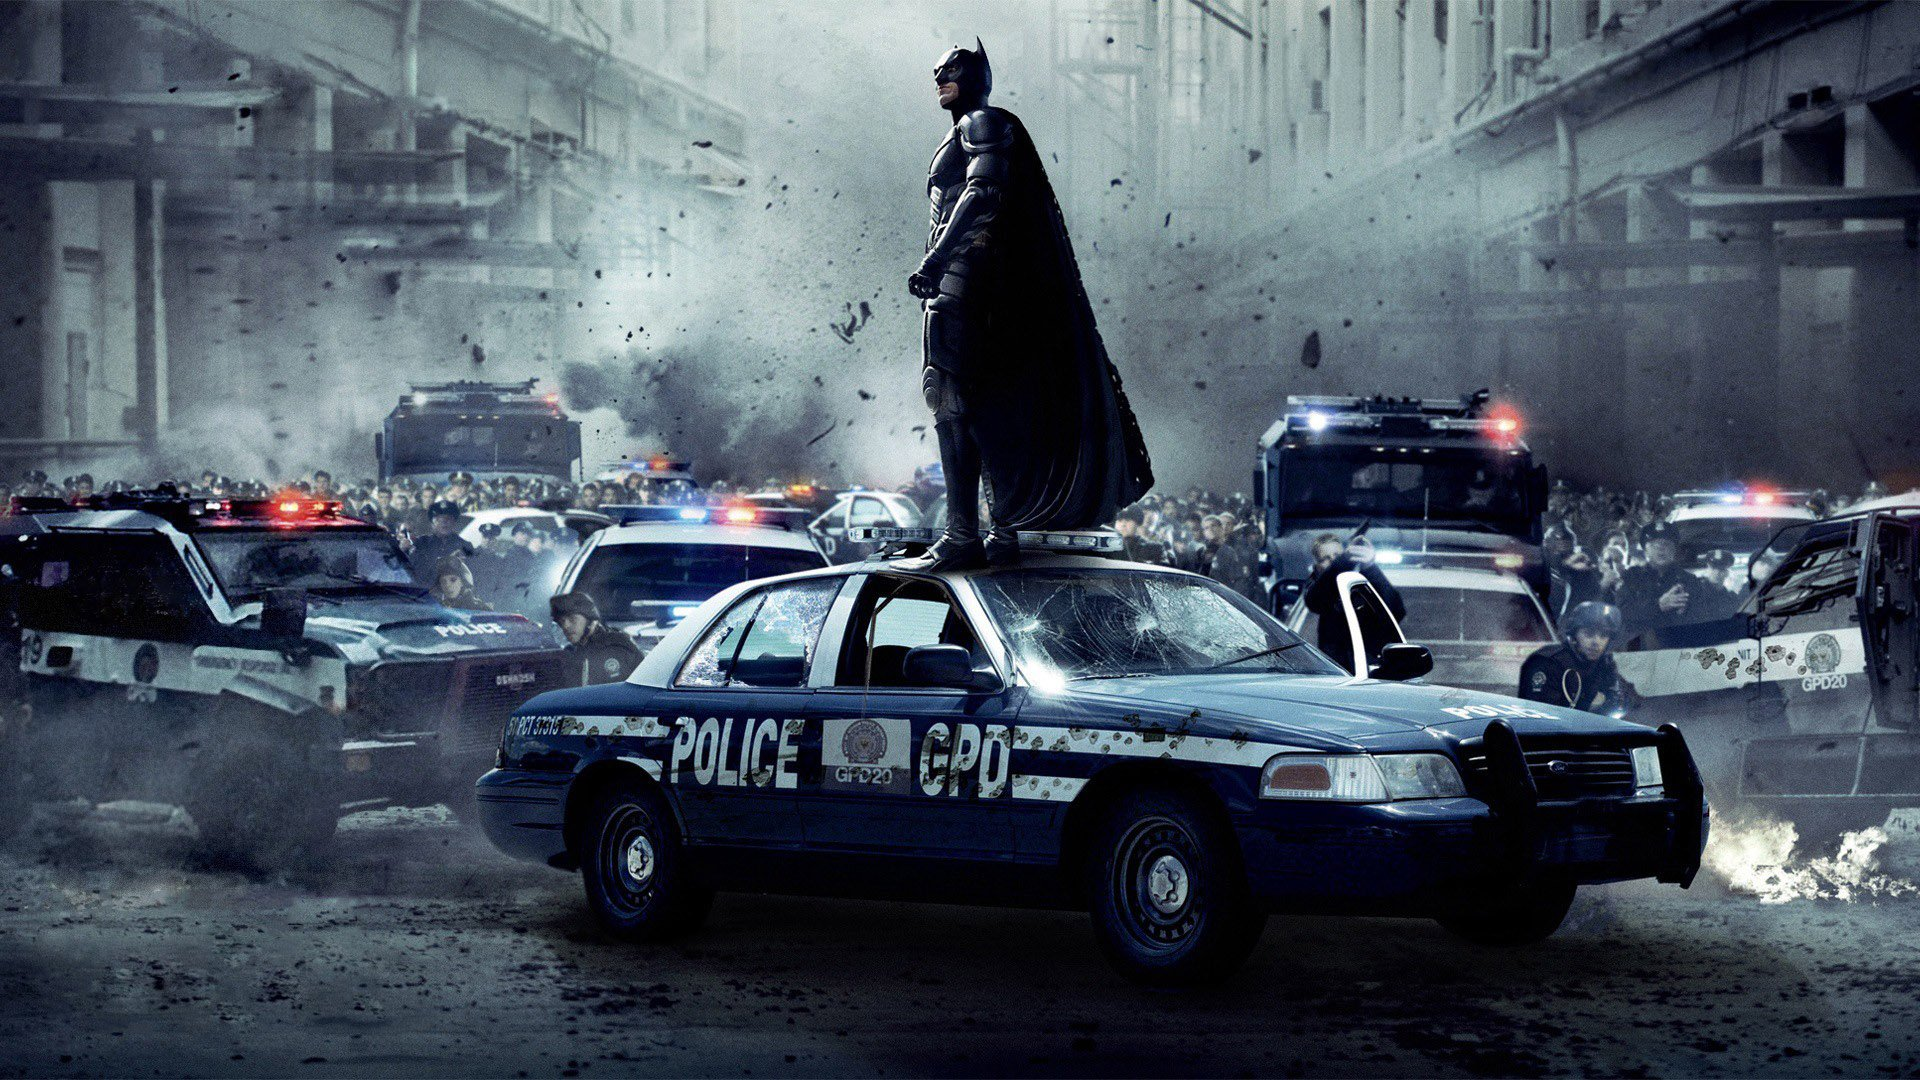 wallpapers mac batman vehicle police heroes background cool 1920x1080